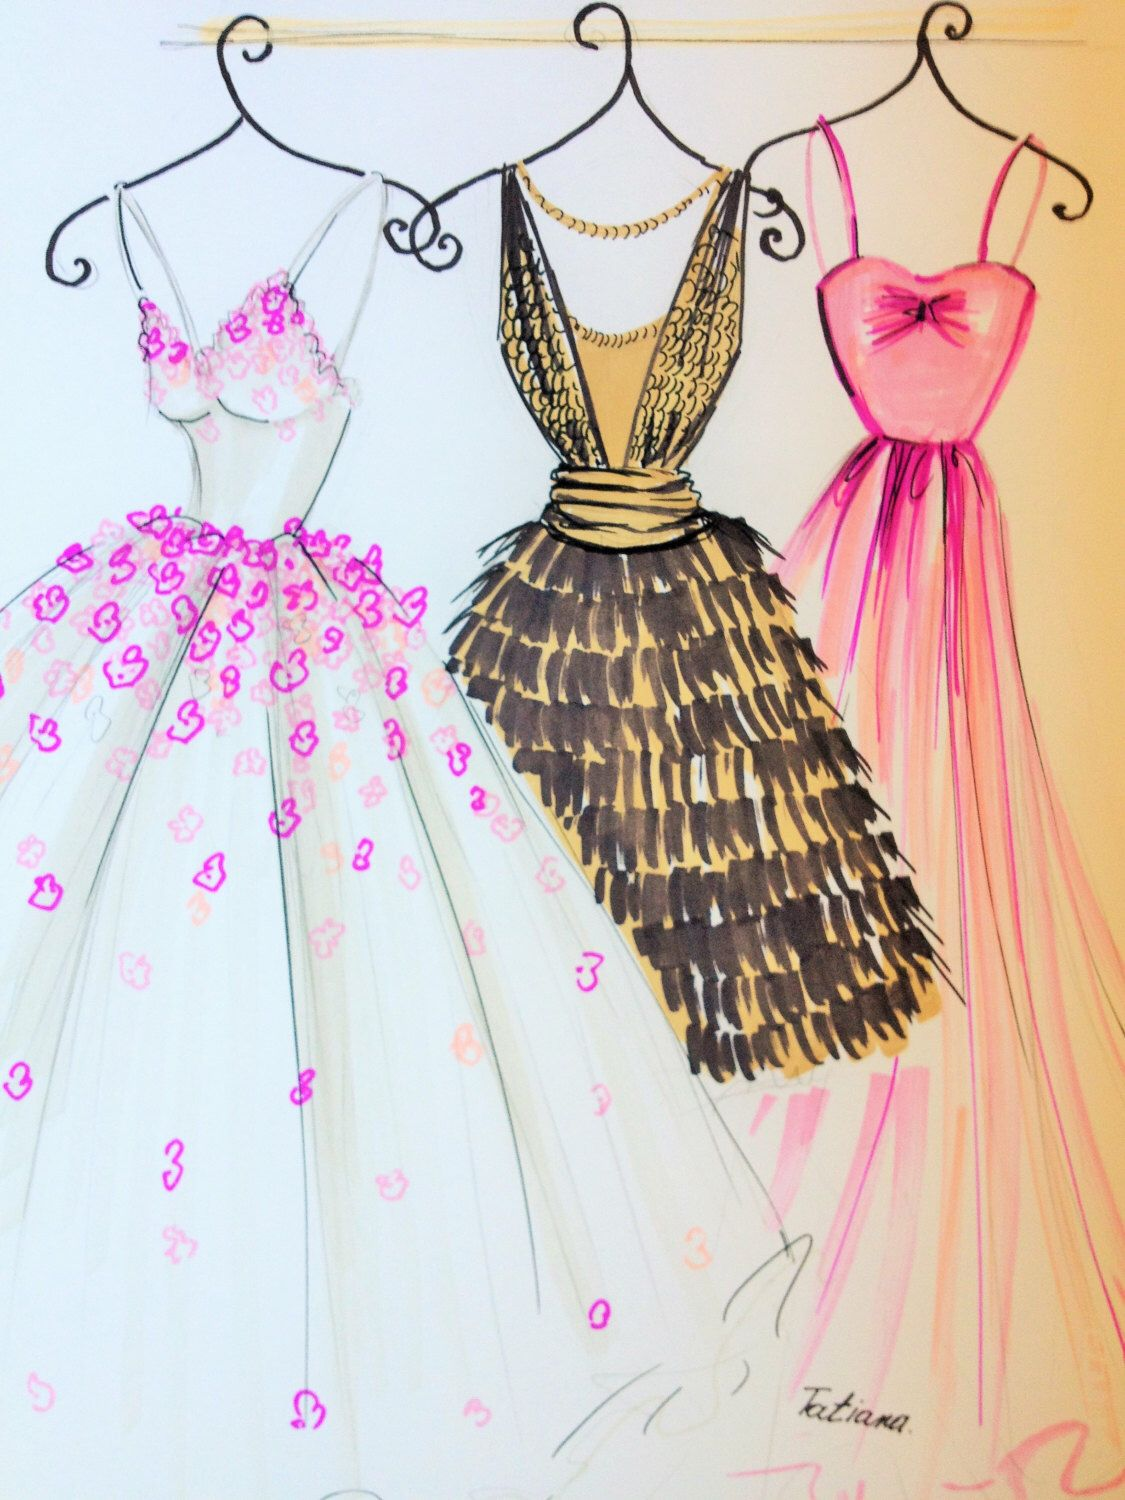 It's just a picture of Selective Drawing Of Dress Design